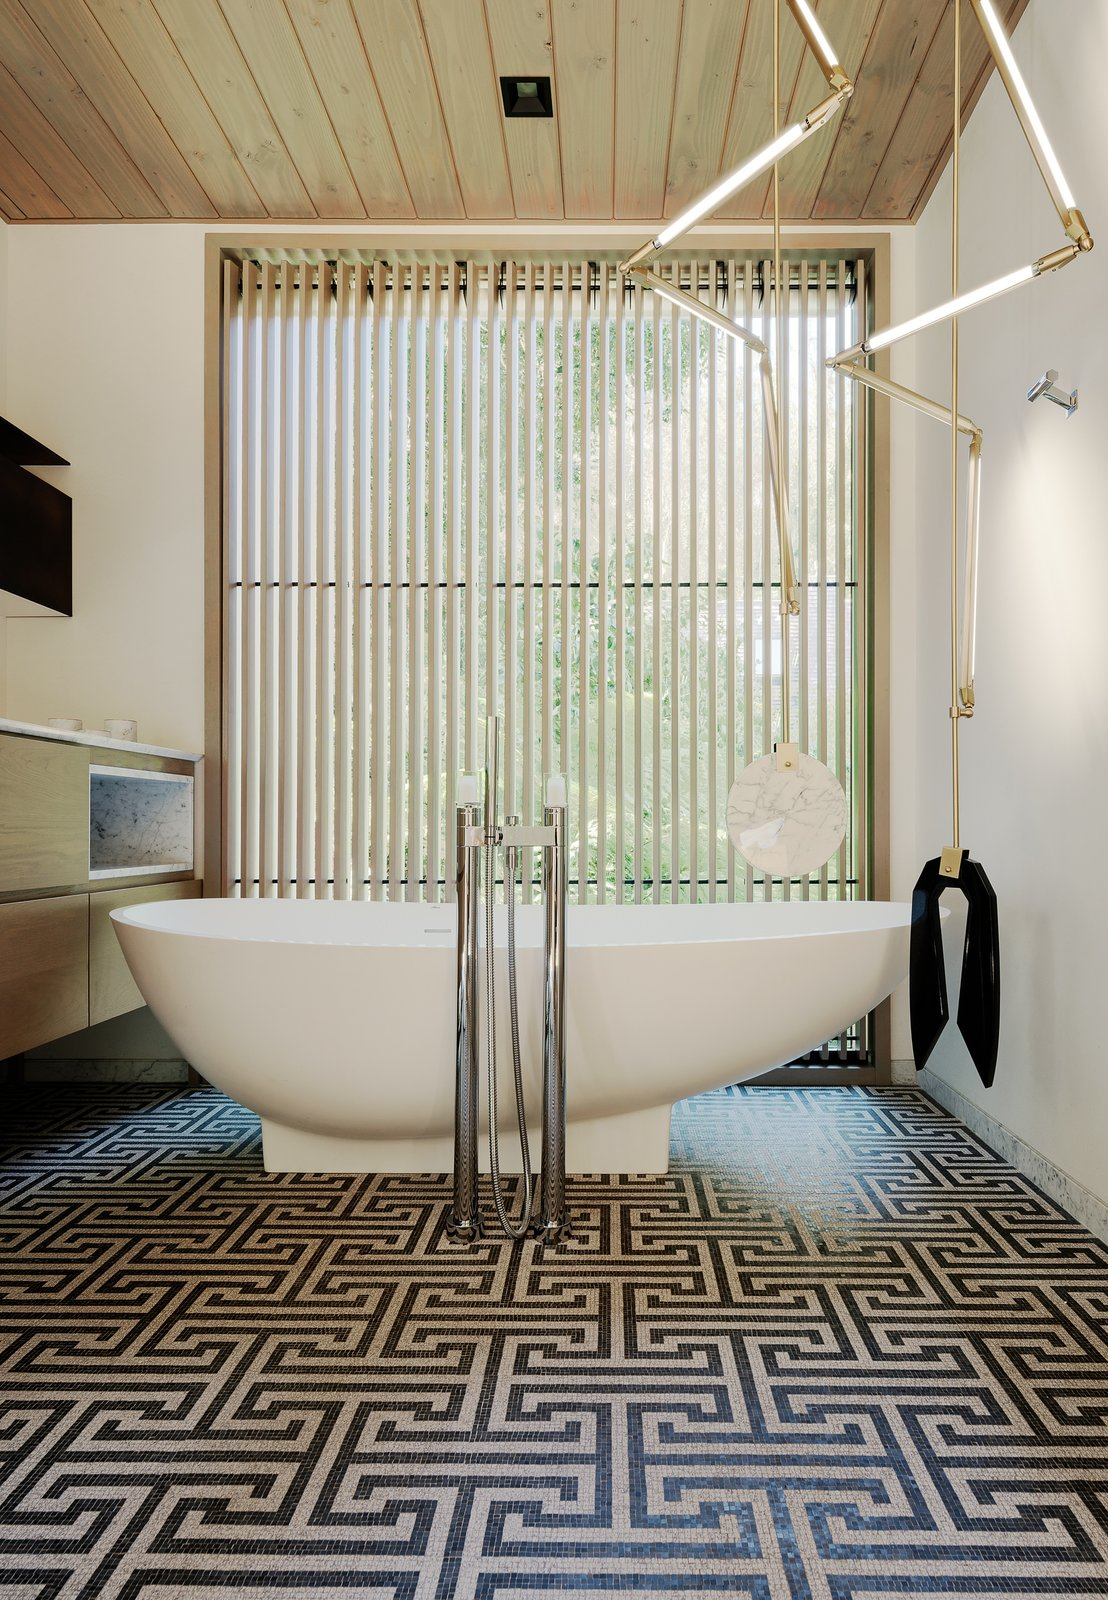 Twin Peaks Residence by Feldman Architecture bathroom with standalone tub